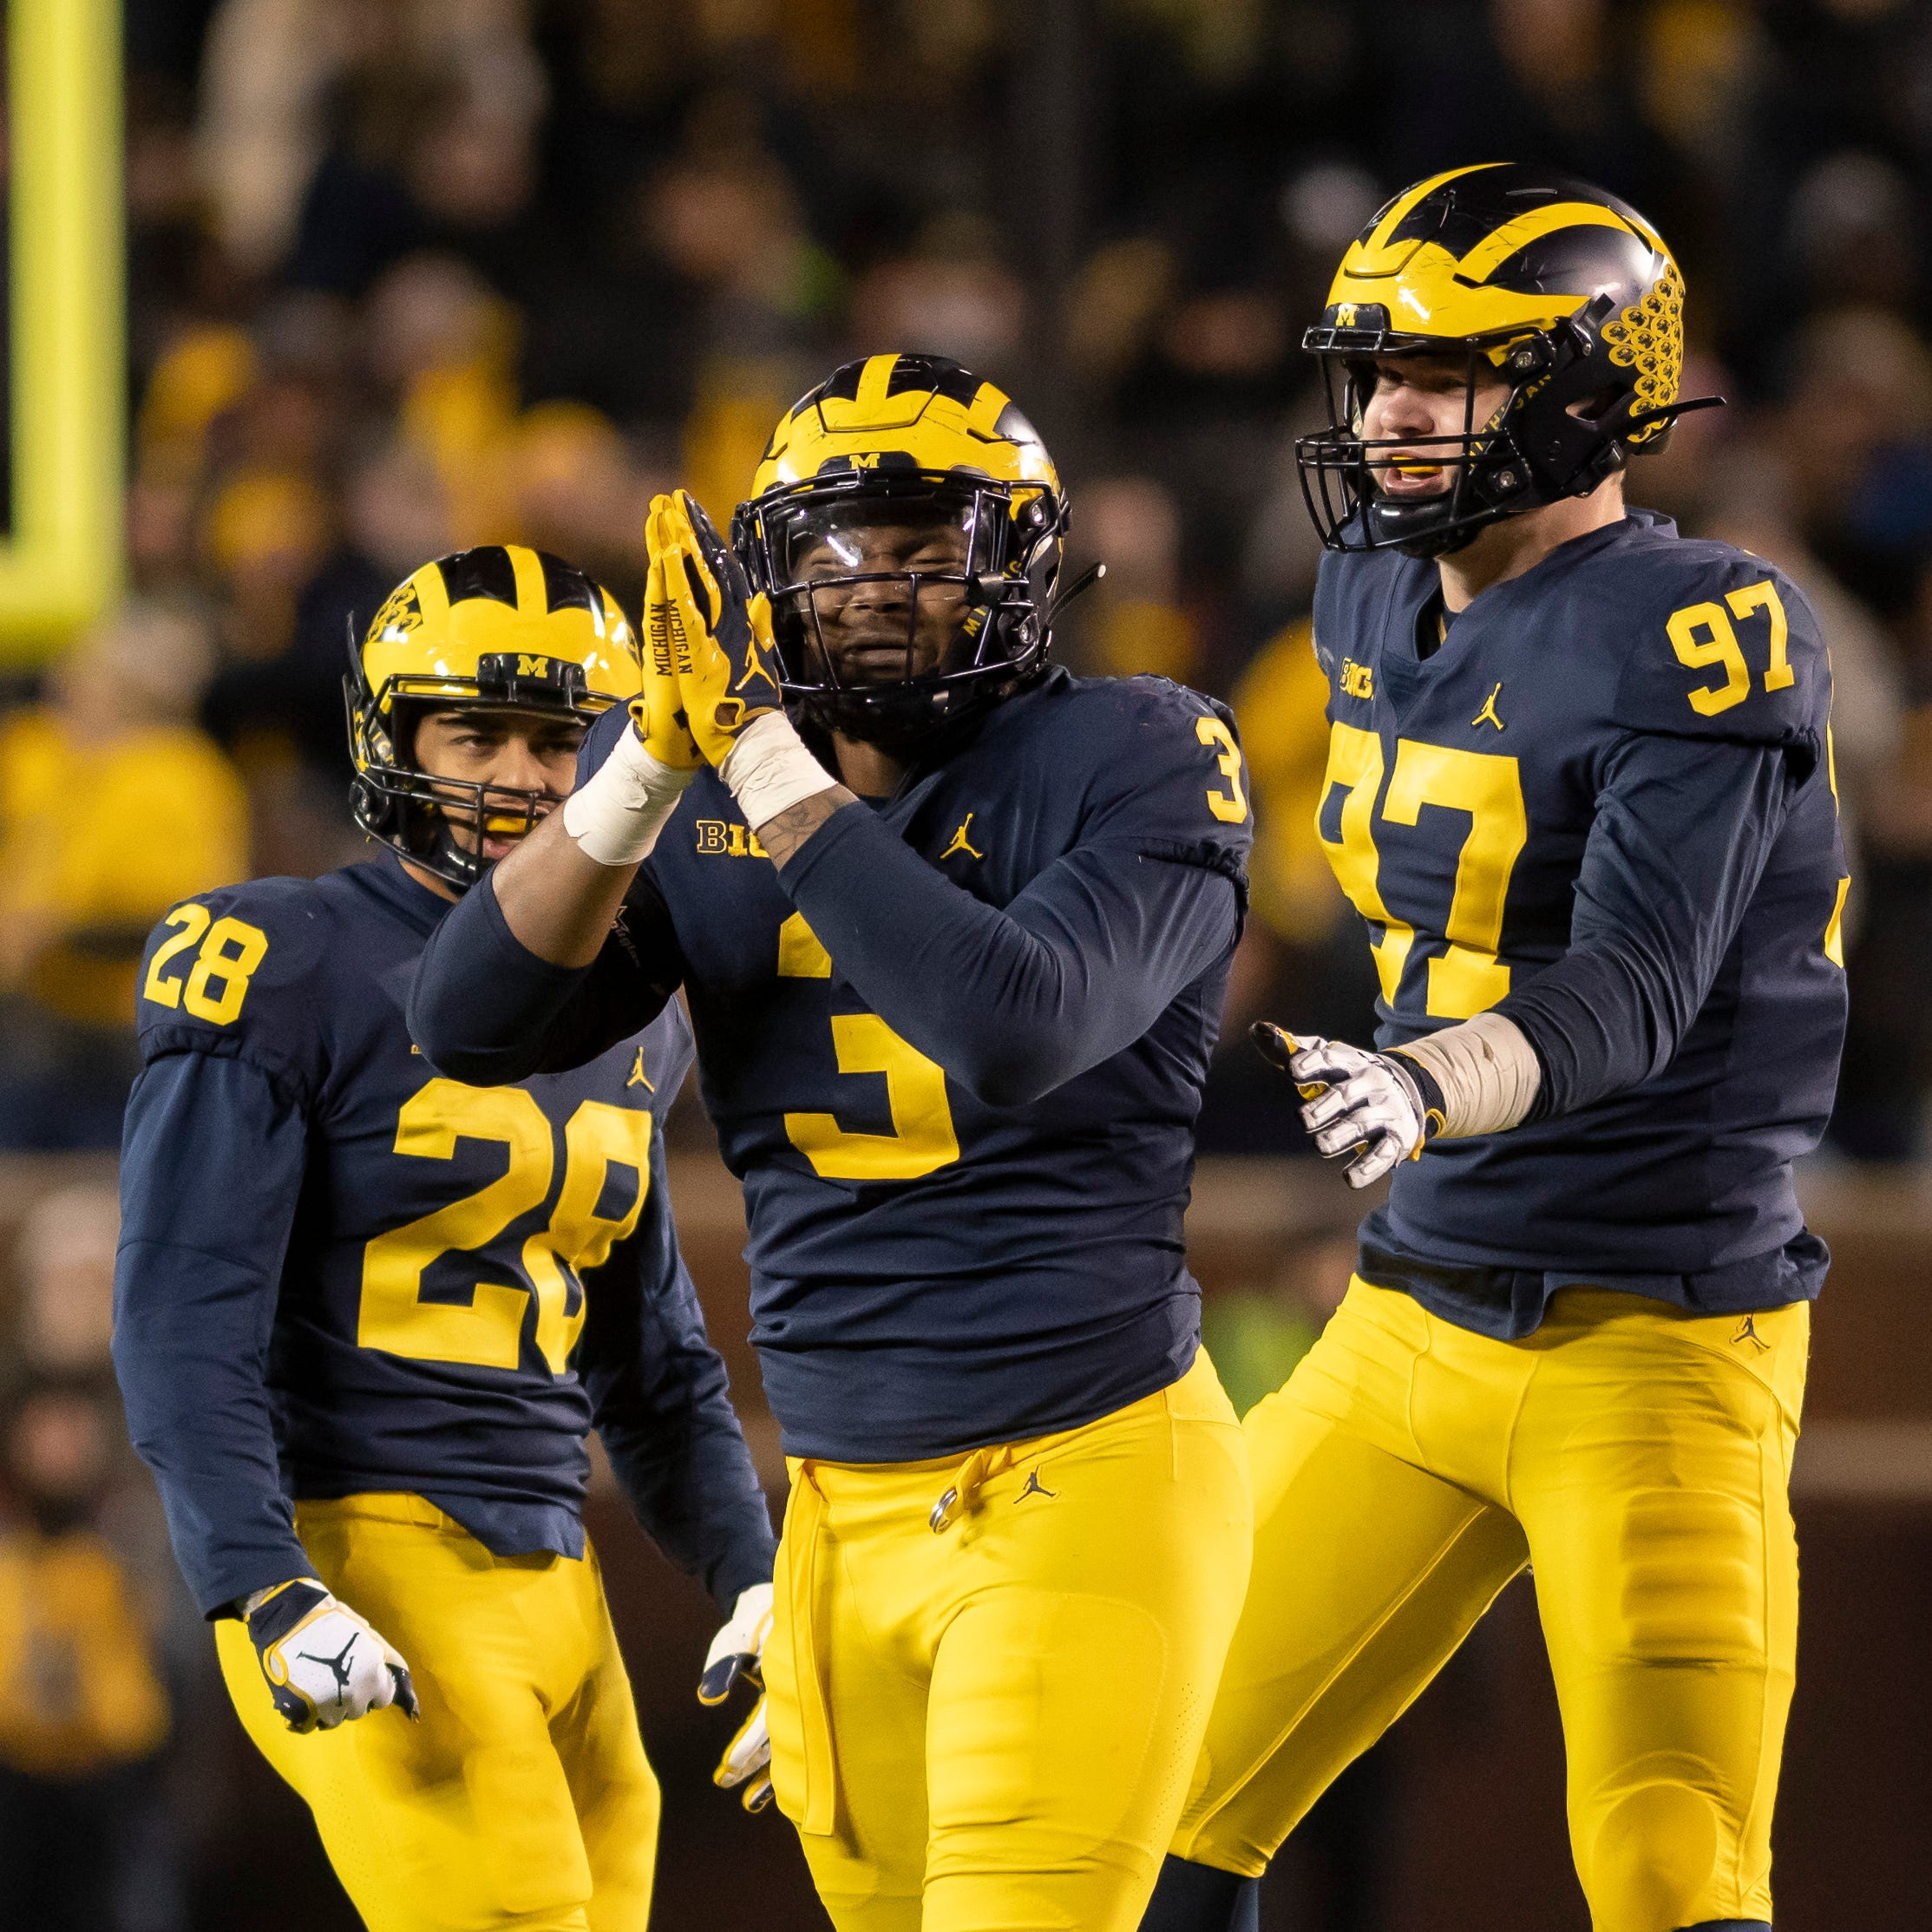 Michigan still No. 4, top six unchanged in both polls